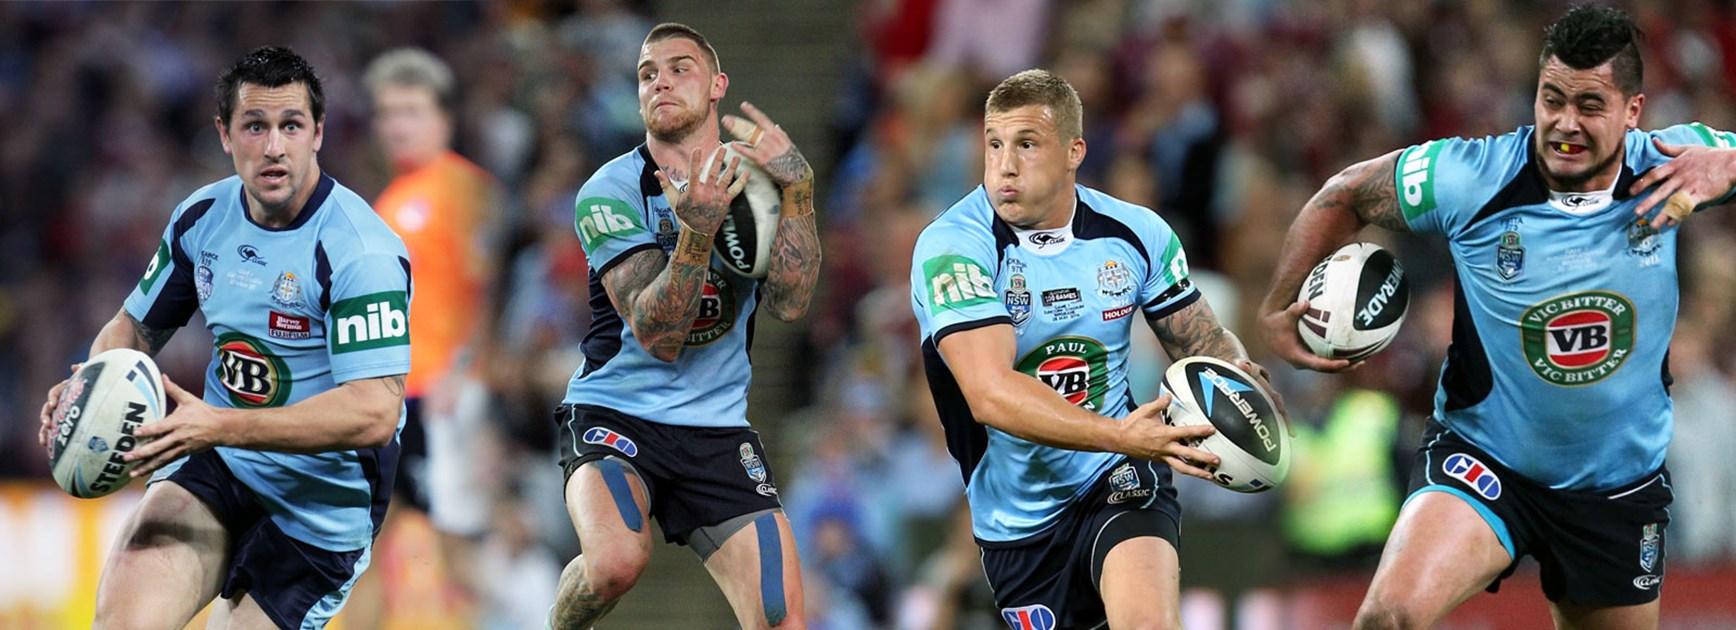 Mitchell Pearce, Josh Dugan, Trent Hodkinson and Andrew Fifita all make NRL.com's NSW Origin team.